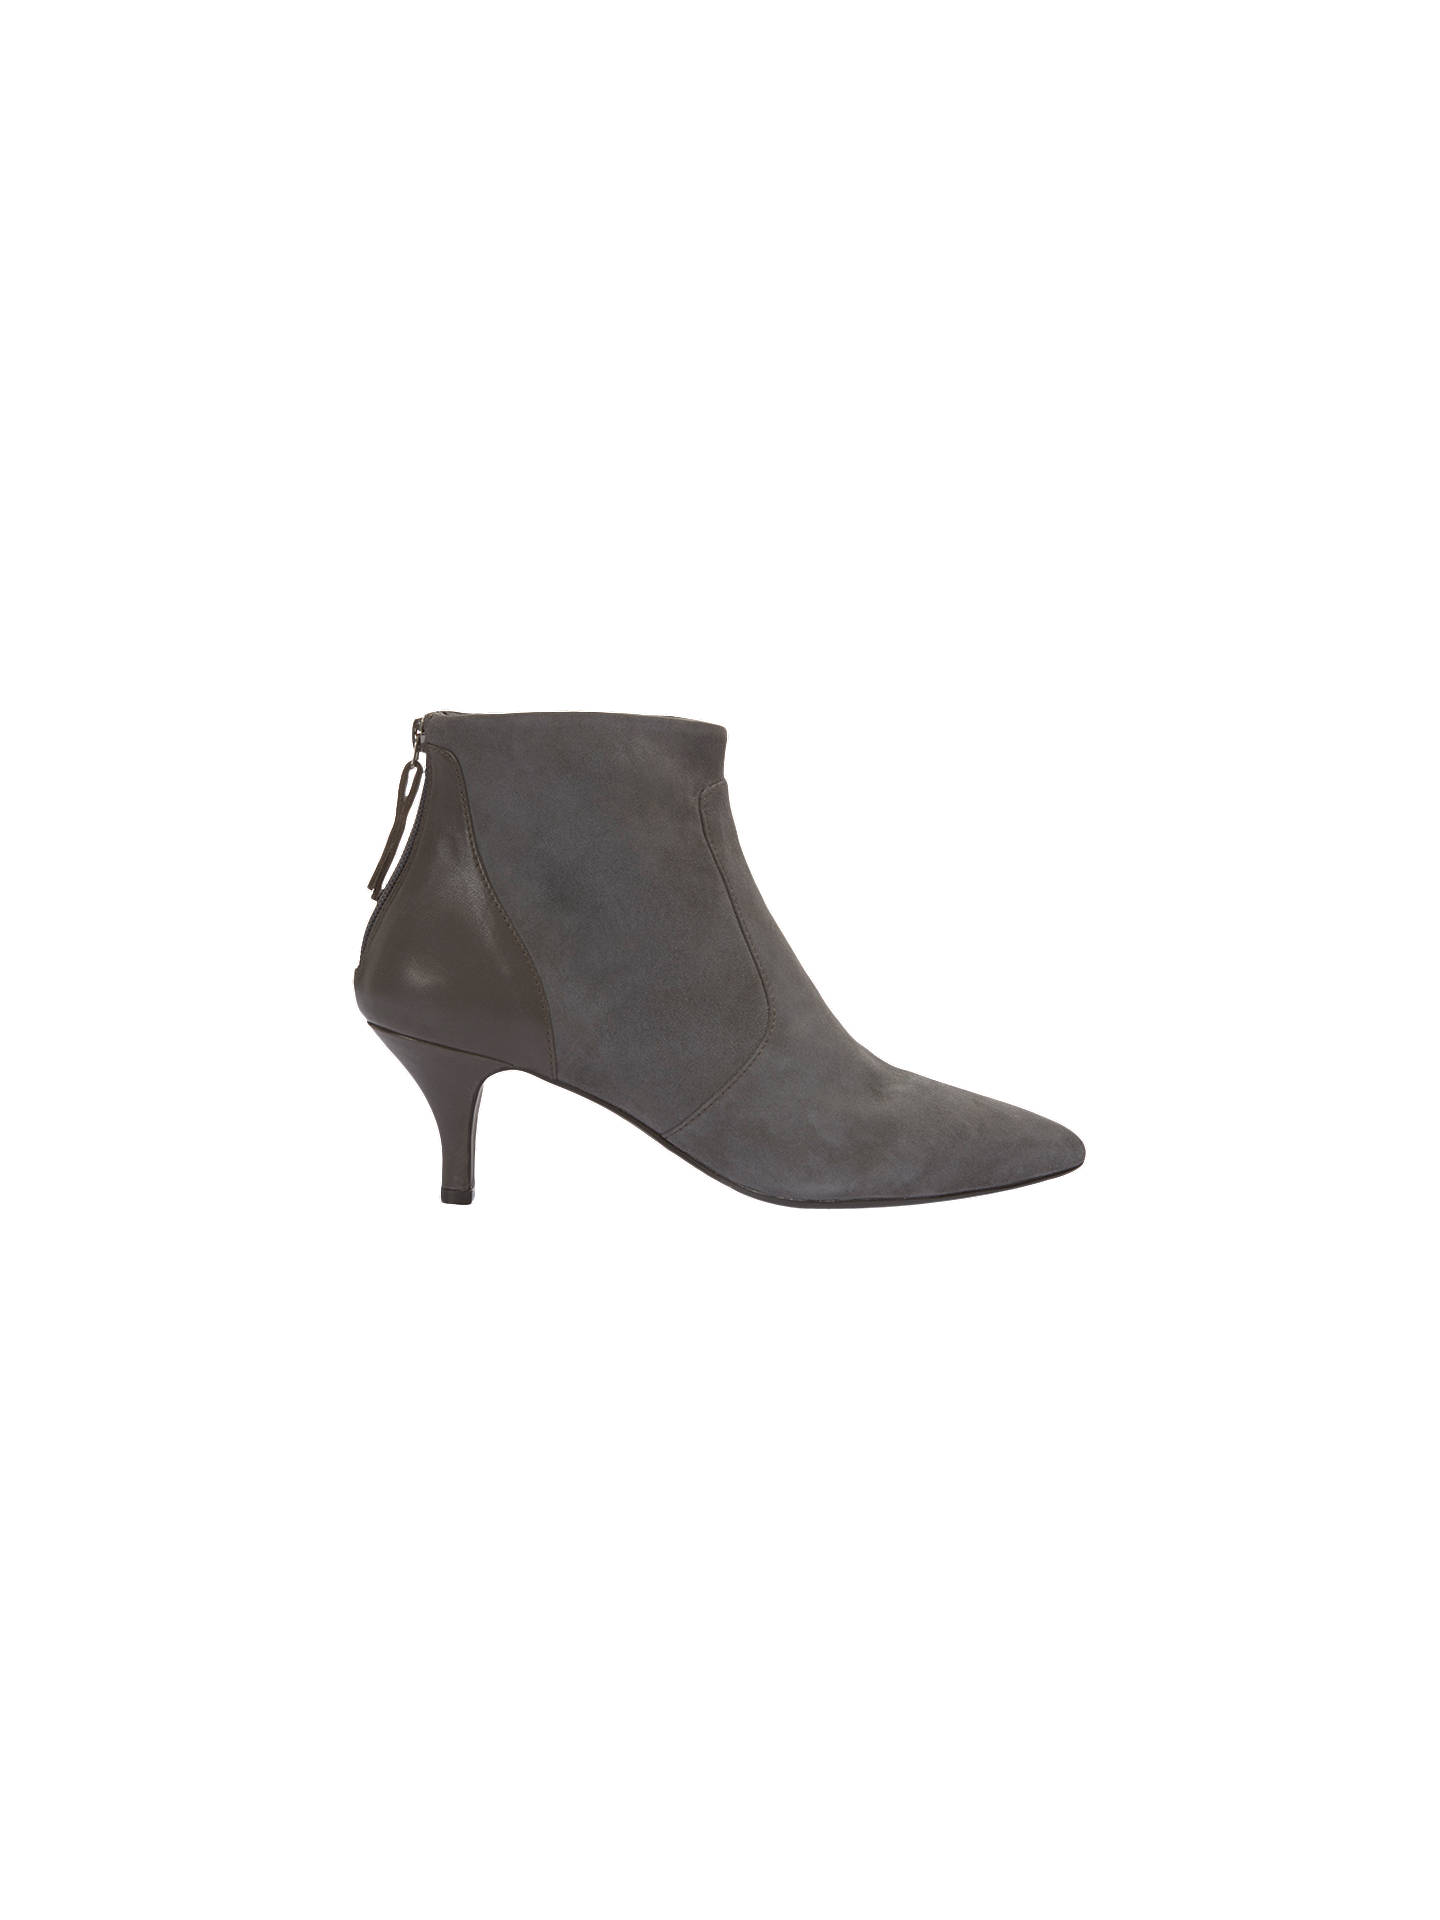 2b472a0ad71 Buy Mint Velvet Lucie Kitten Heeled Ankle Boots